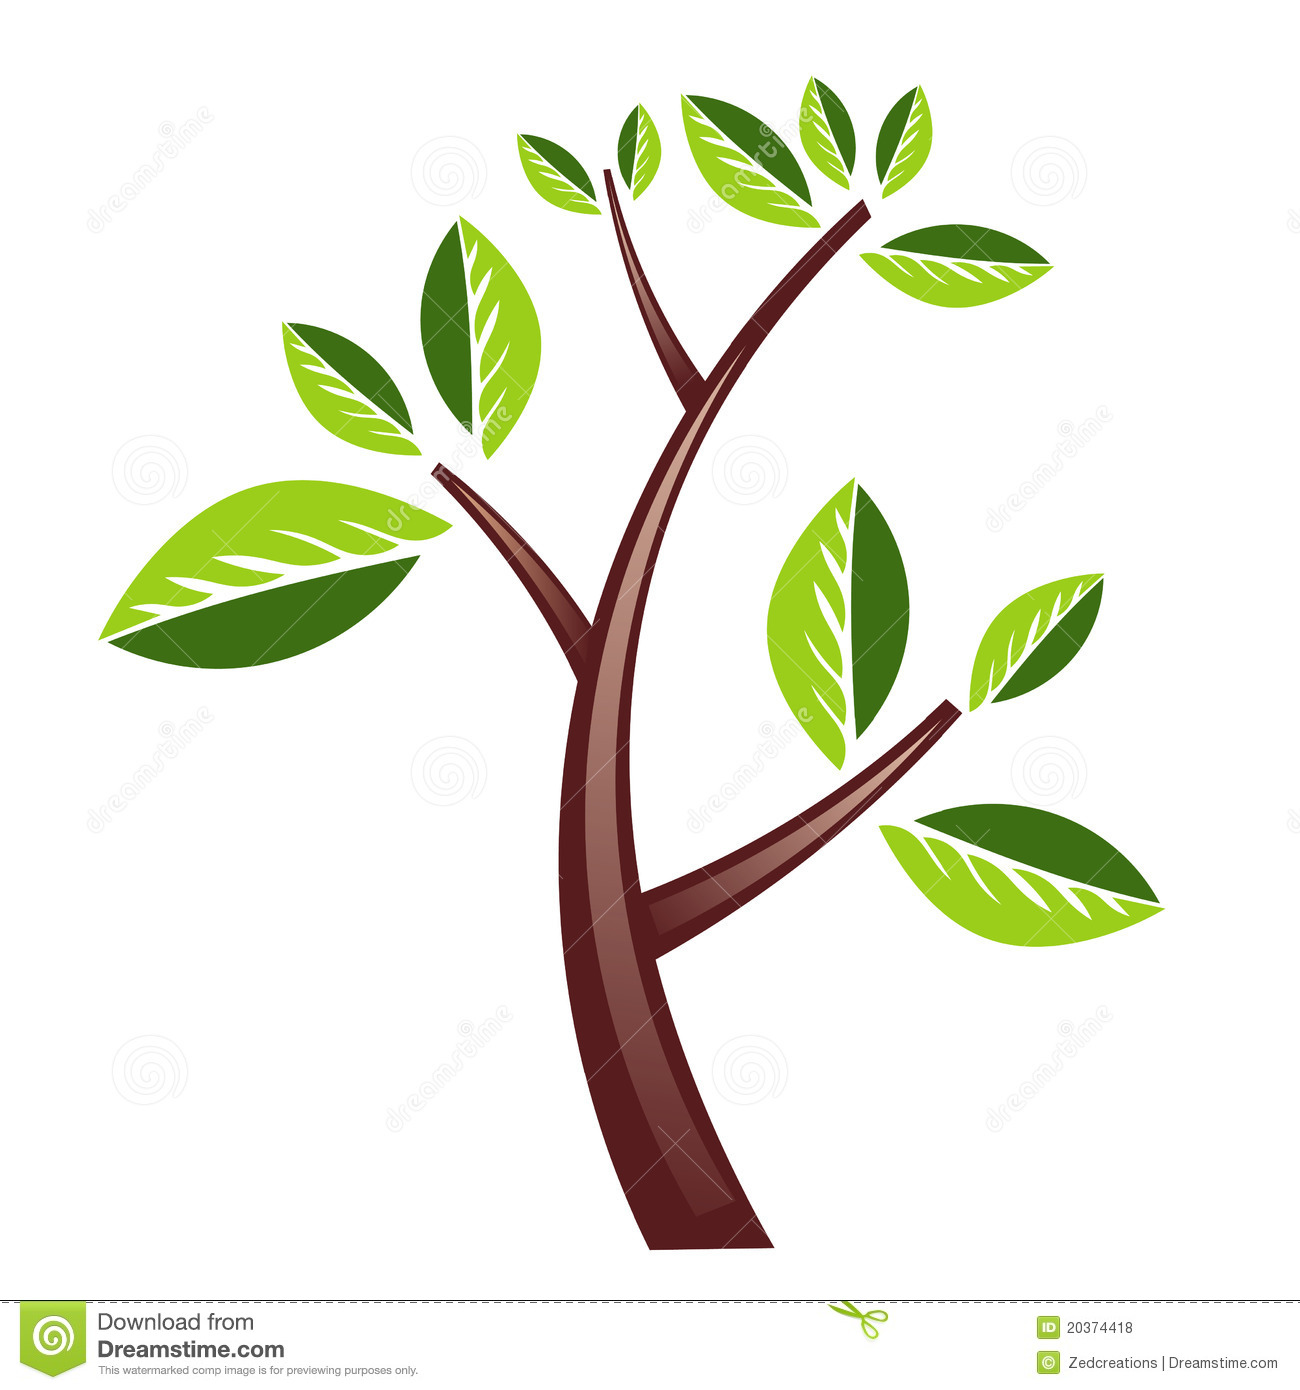 tree design royalty free stock photos image 20374418 clip art sounds for microsoft powerpoint clip art sounds free downloads